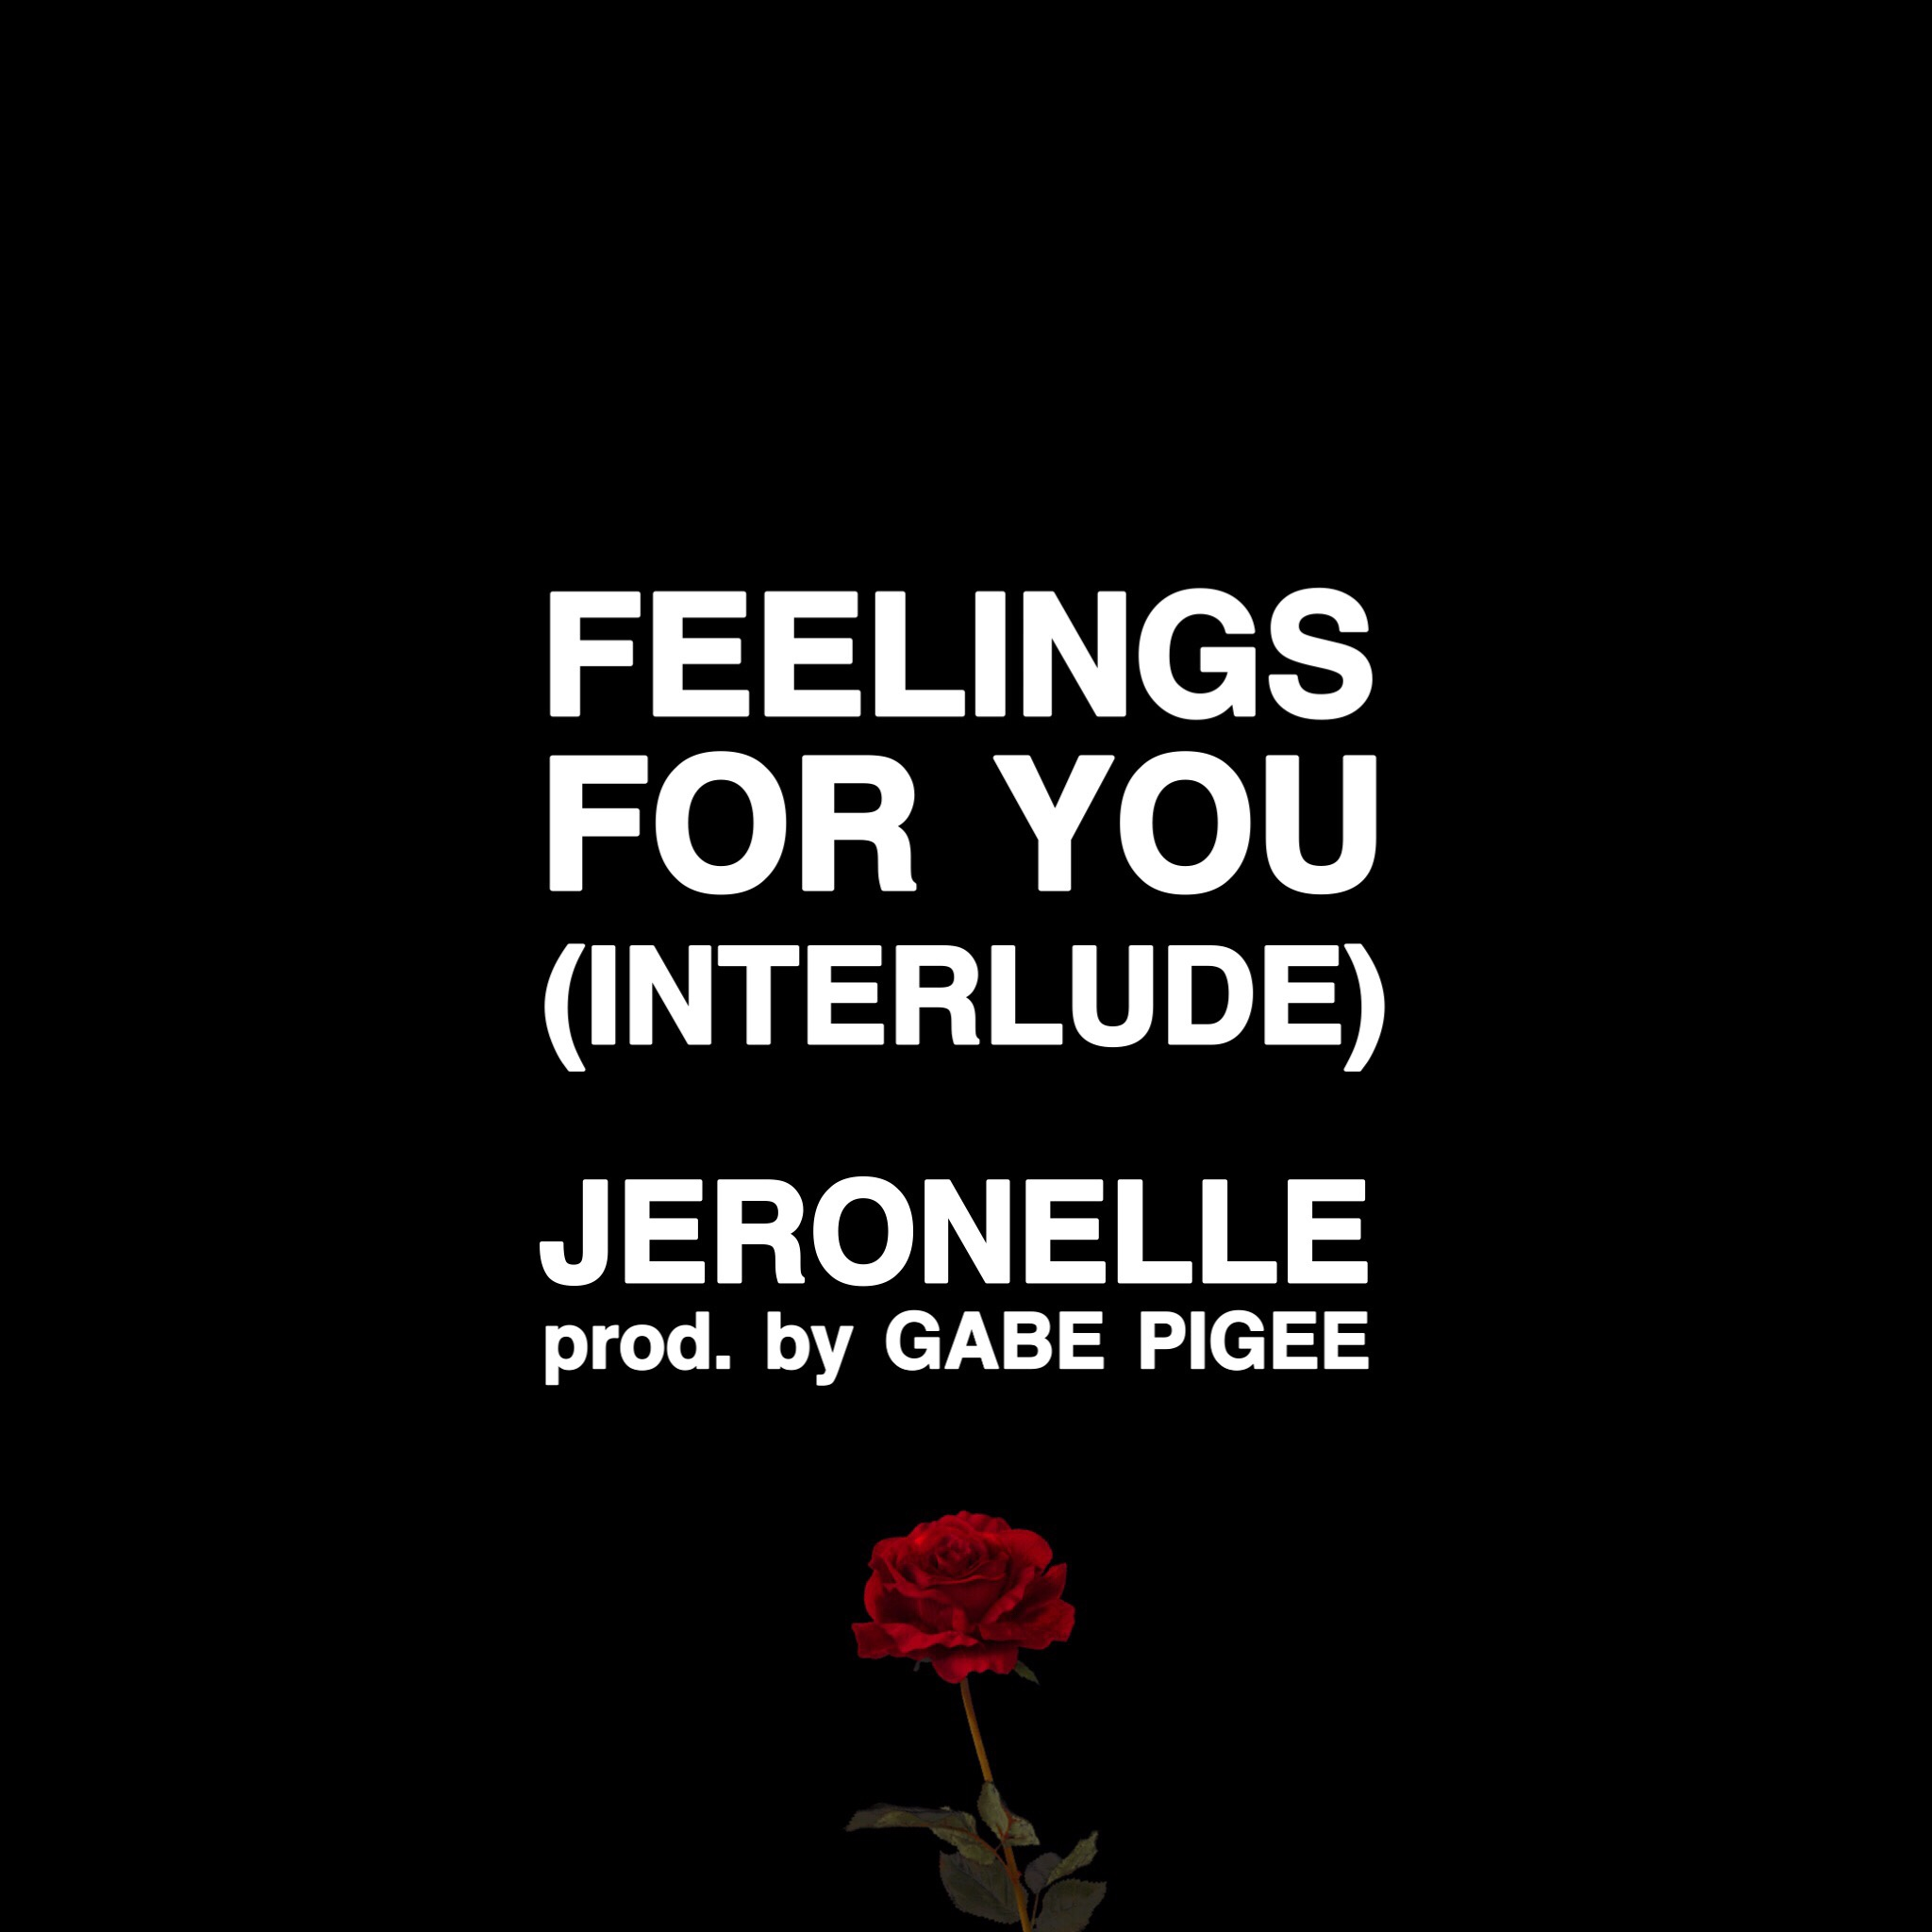 R&B singer JeRonelle debuts new single feelings for you